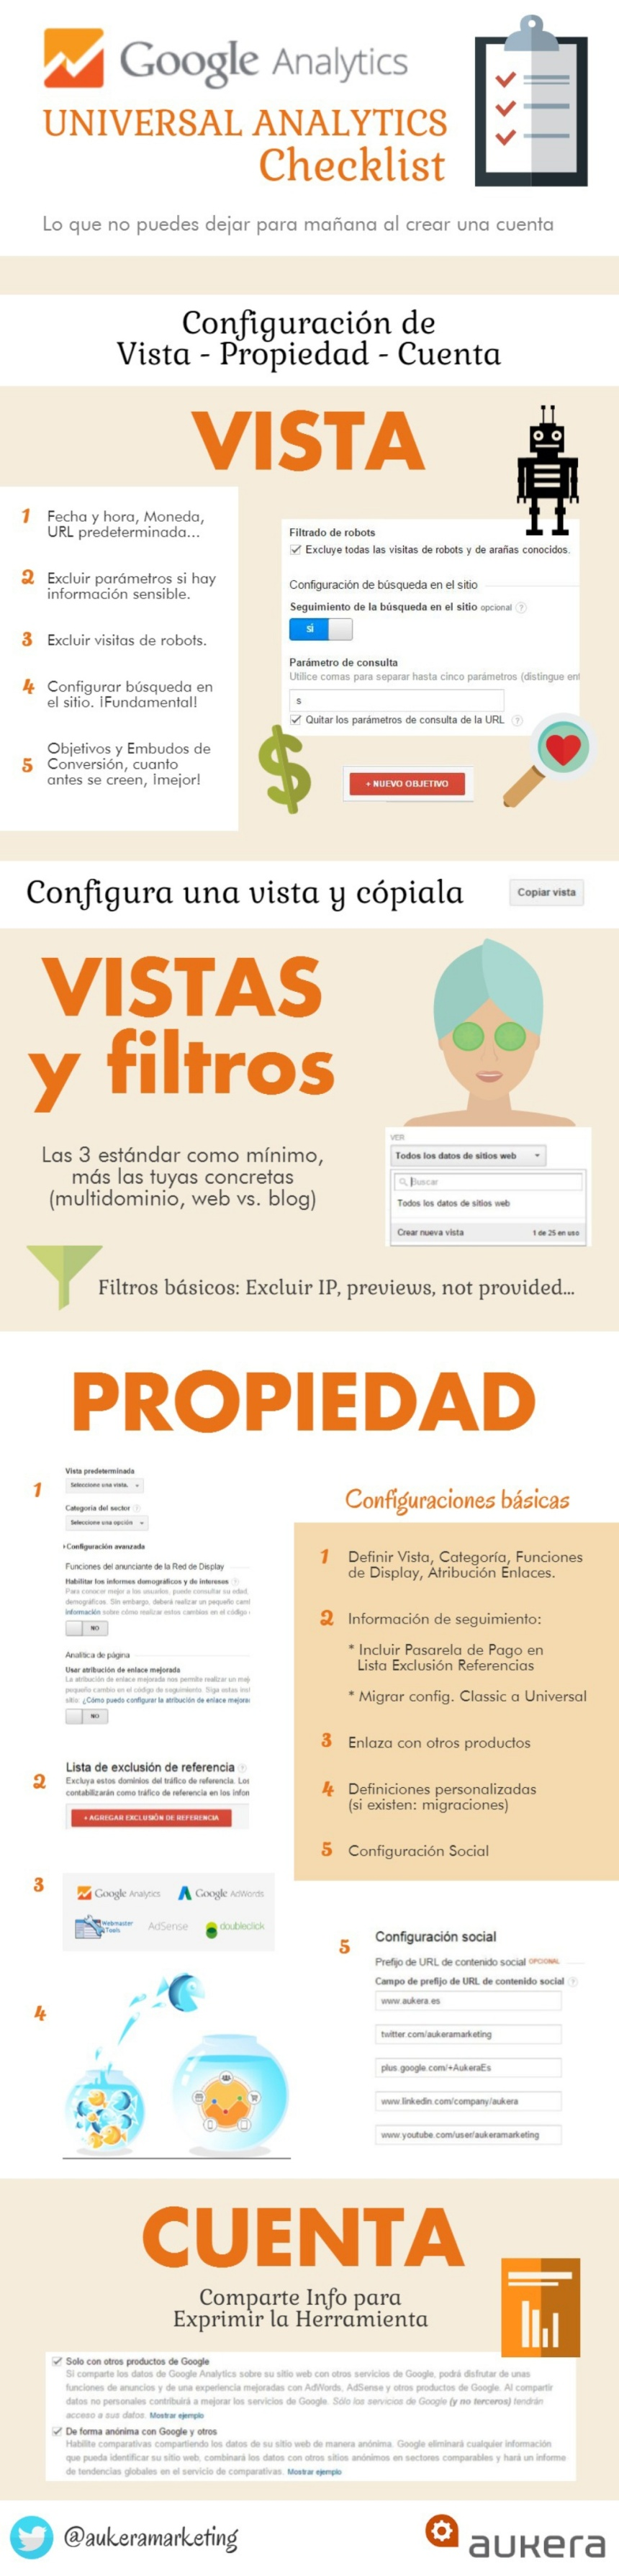 Checklist para Google Analytics